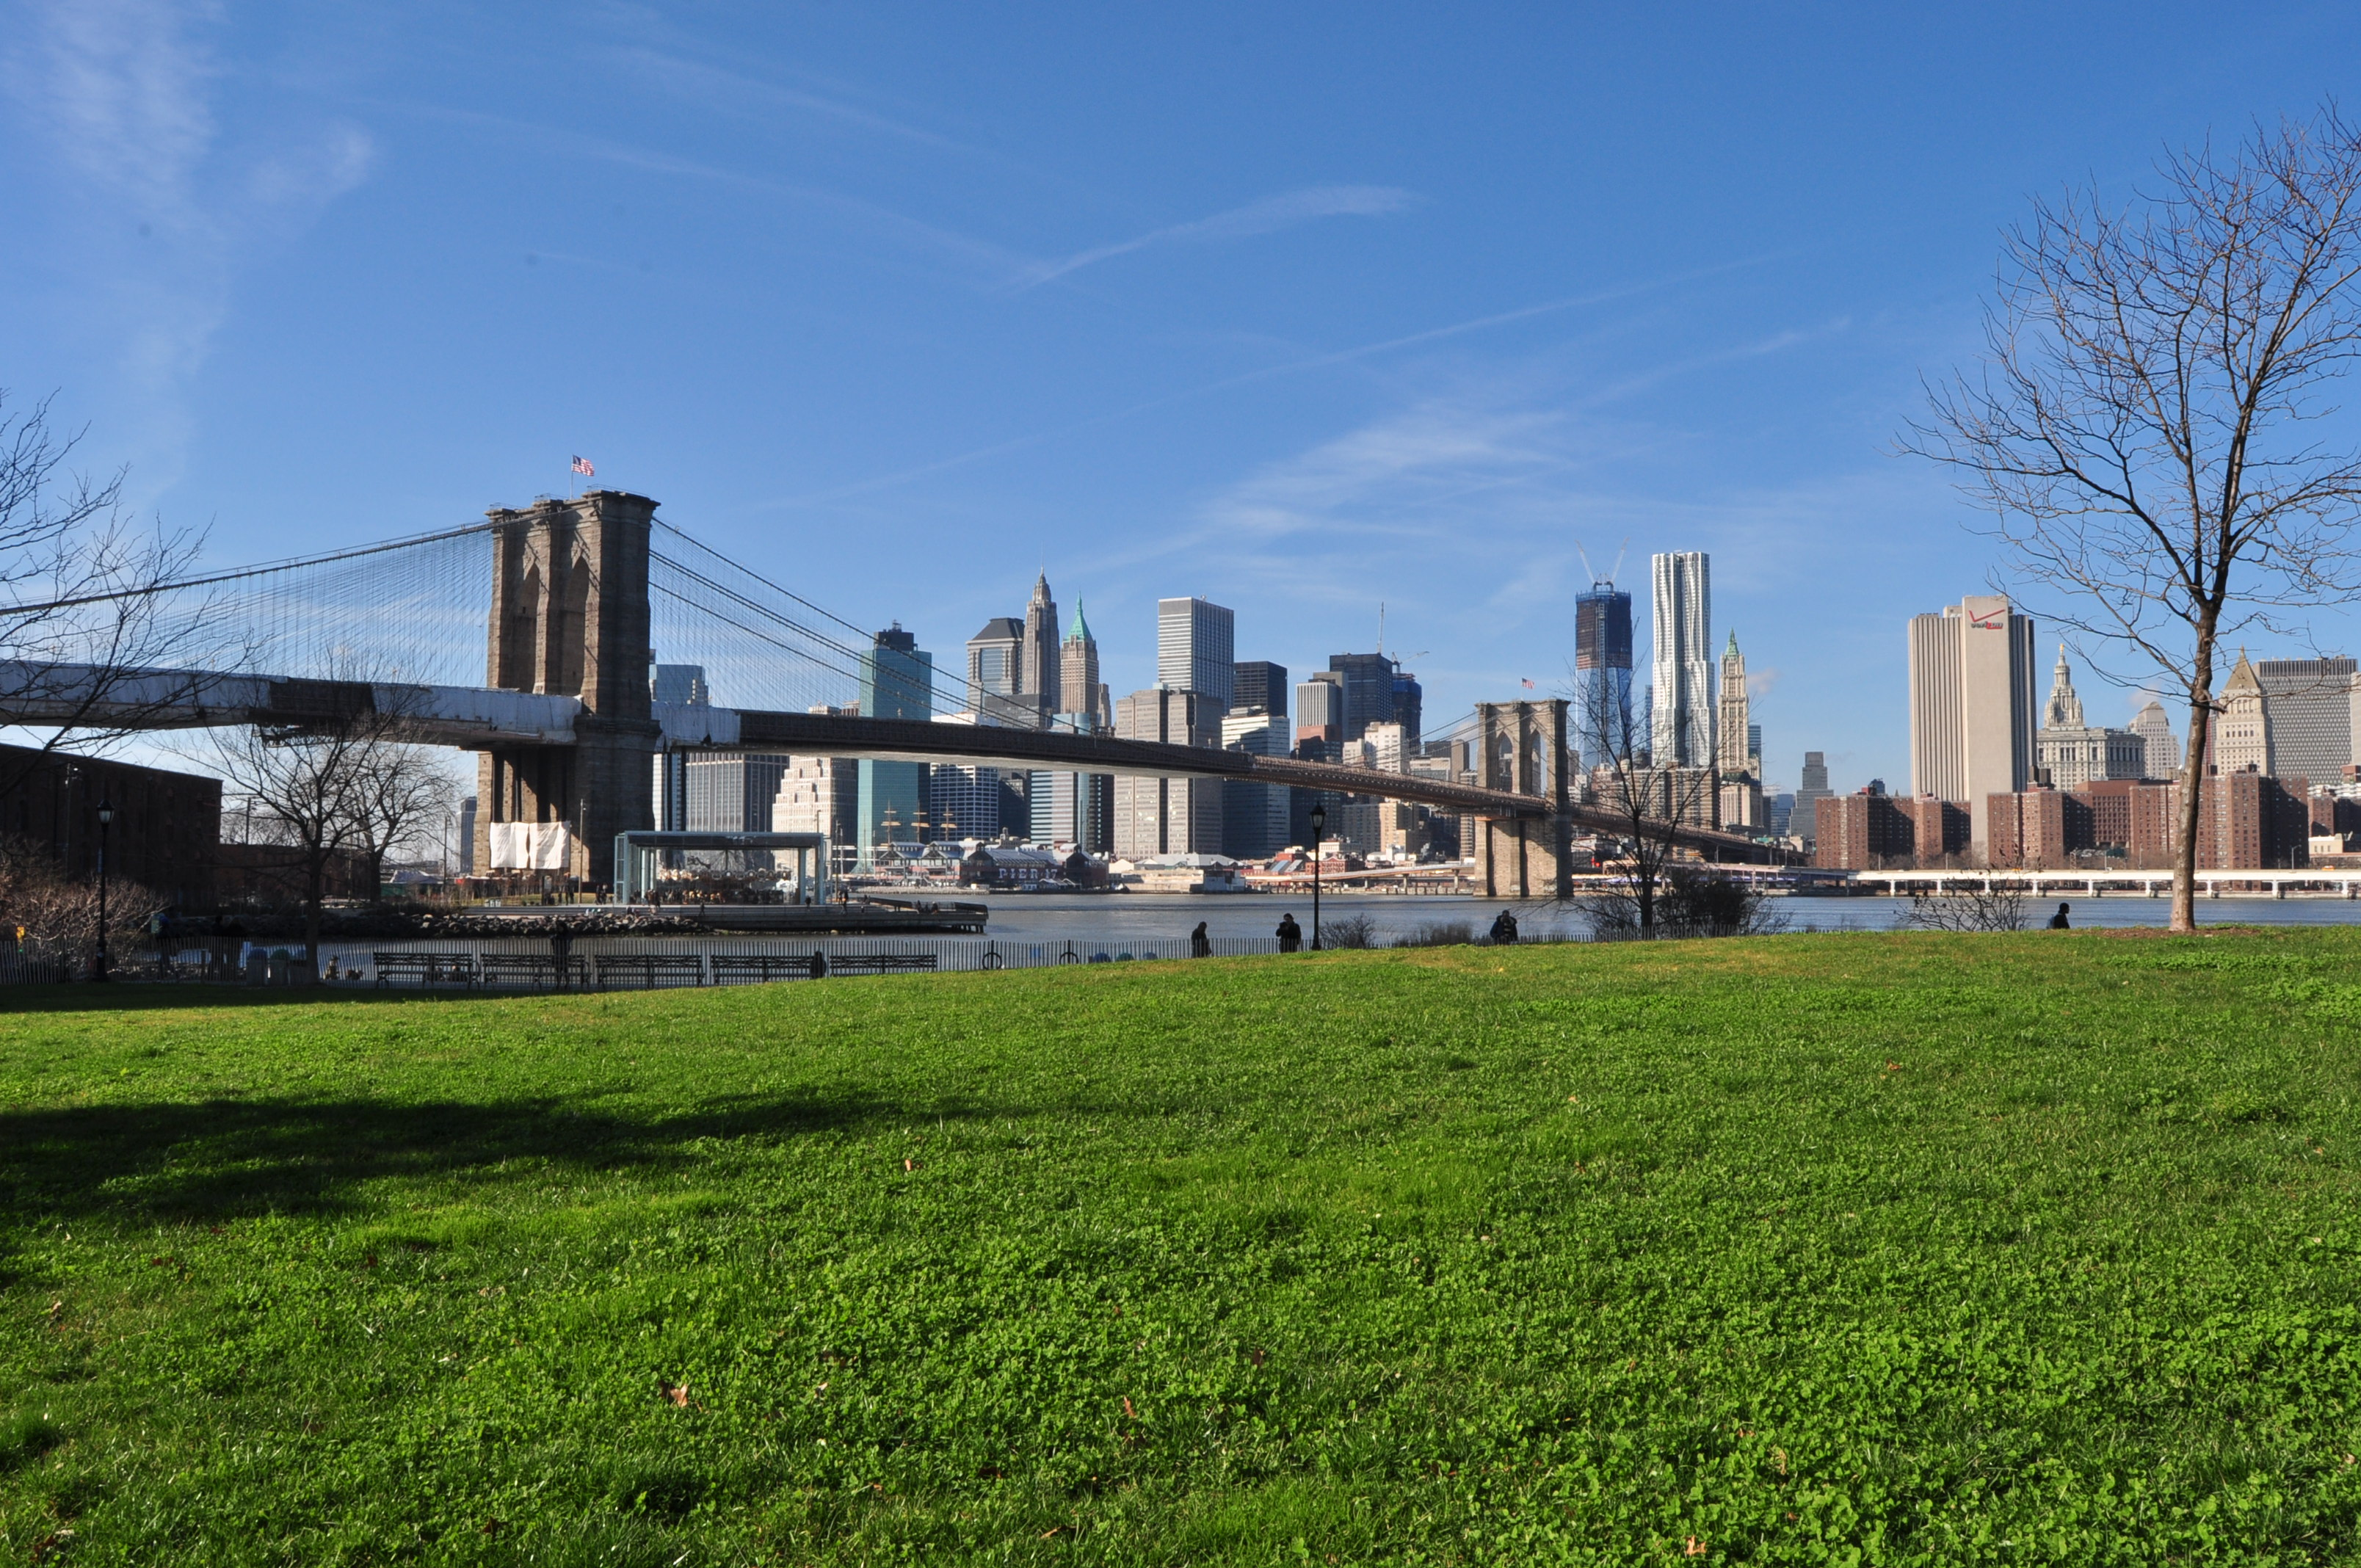 Once it's complete, the financially self-sustaining Brooklyn Bridge Park will be 85 acres along 1.3 miles of East River waterfront overlooking lower Manhattan.